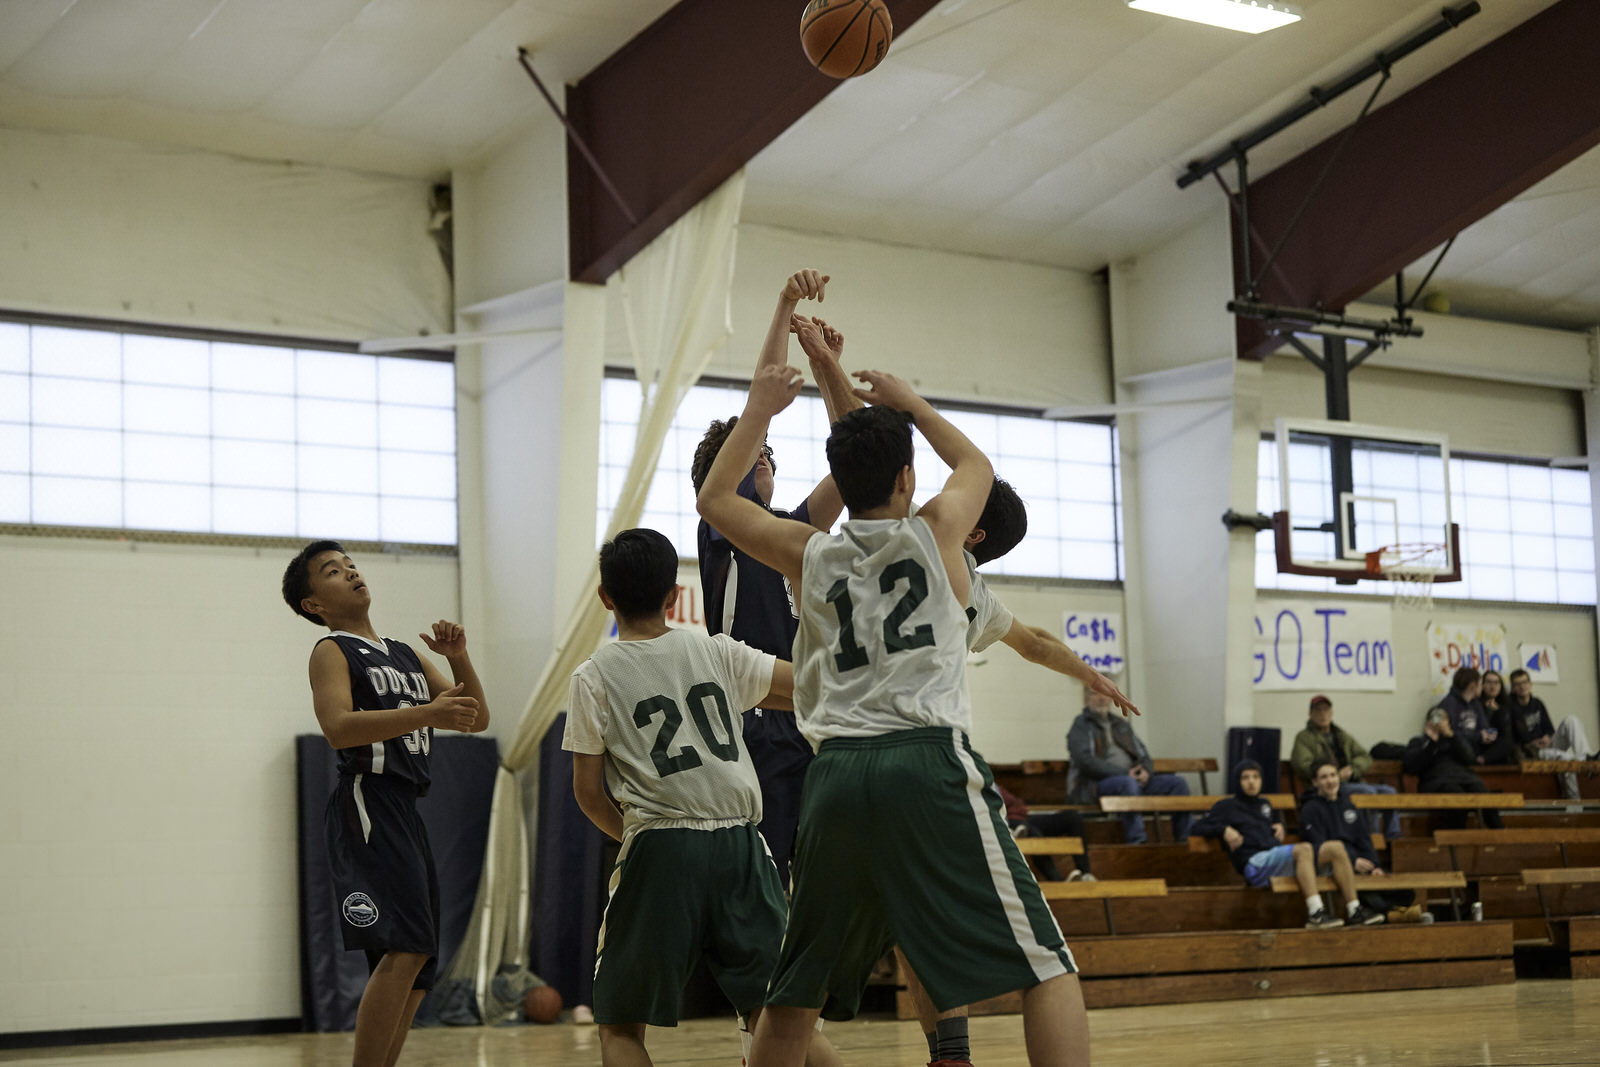 Dublin JV Boys Basketball vs High Mowing School - Jan 26 2019 - 0176.jpg